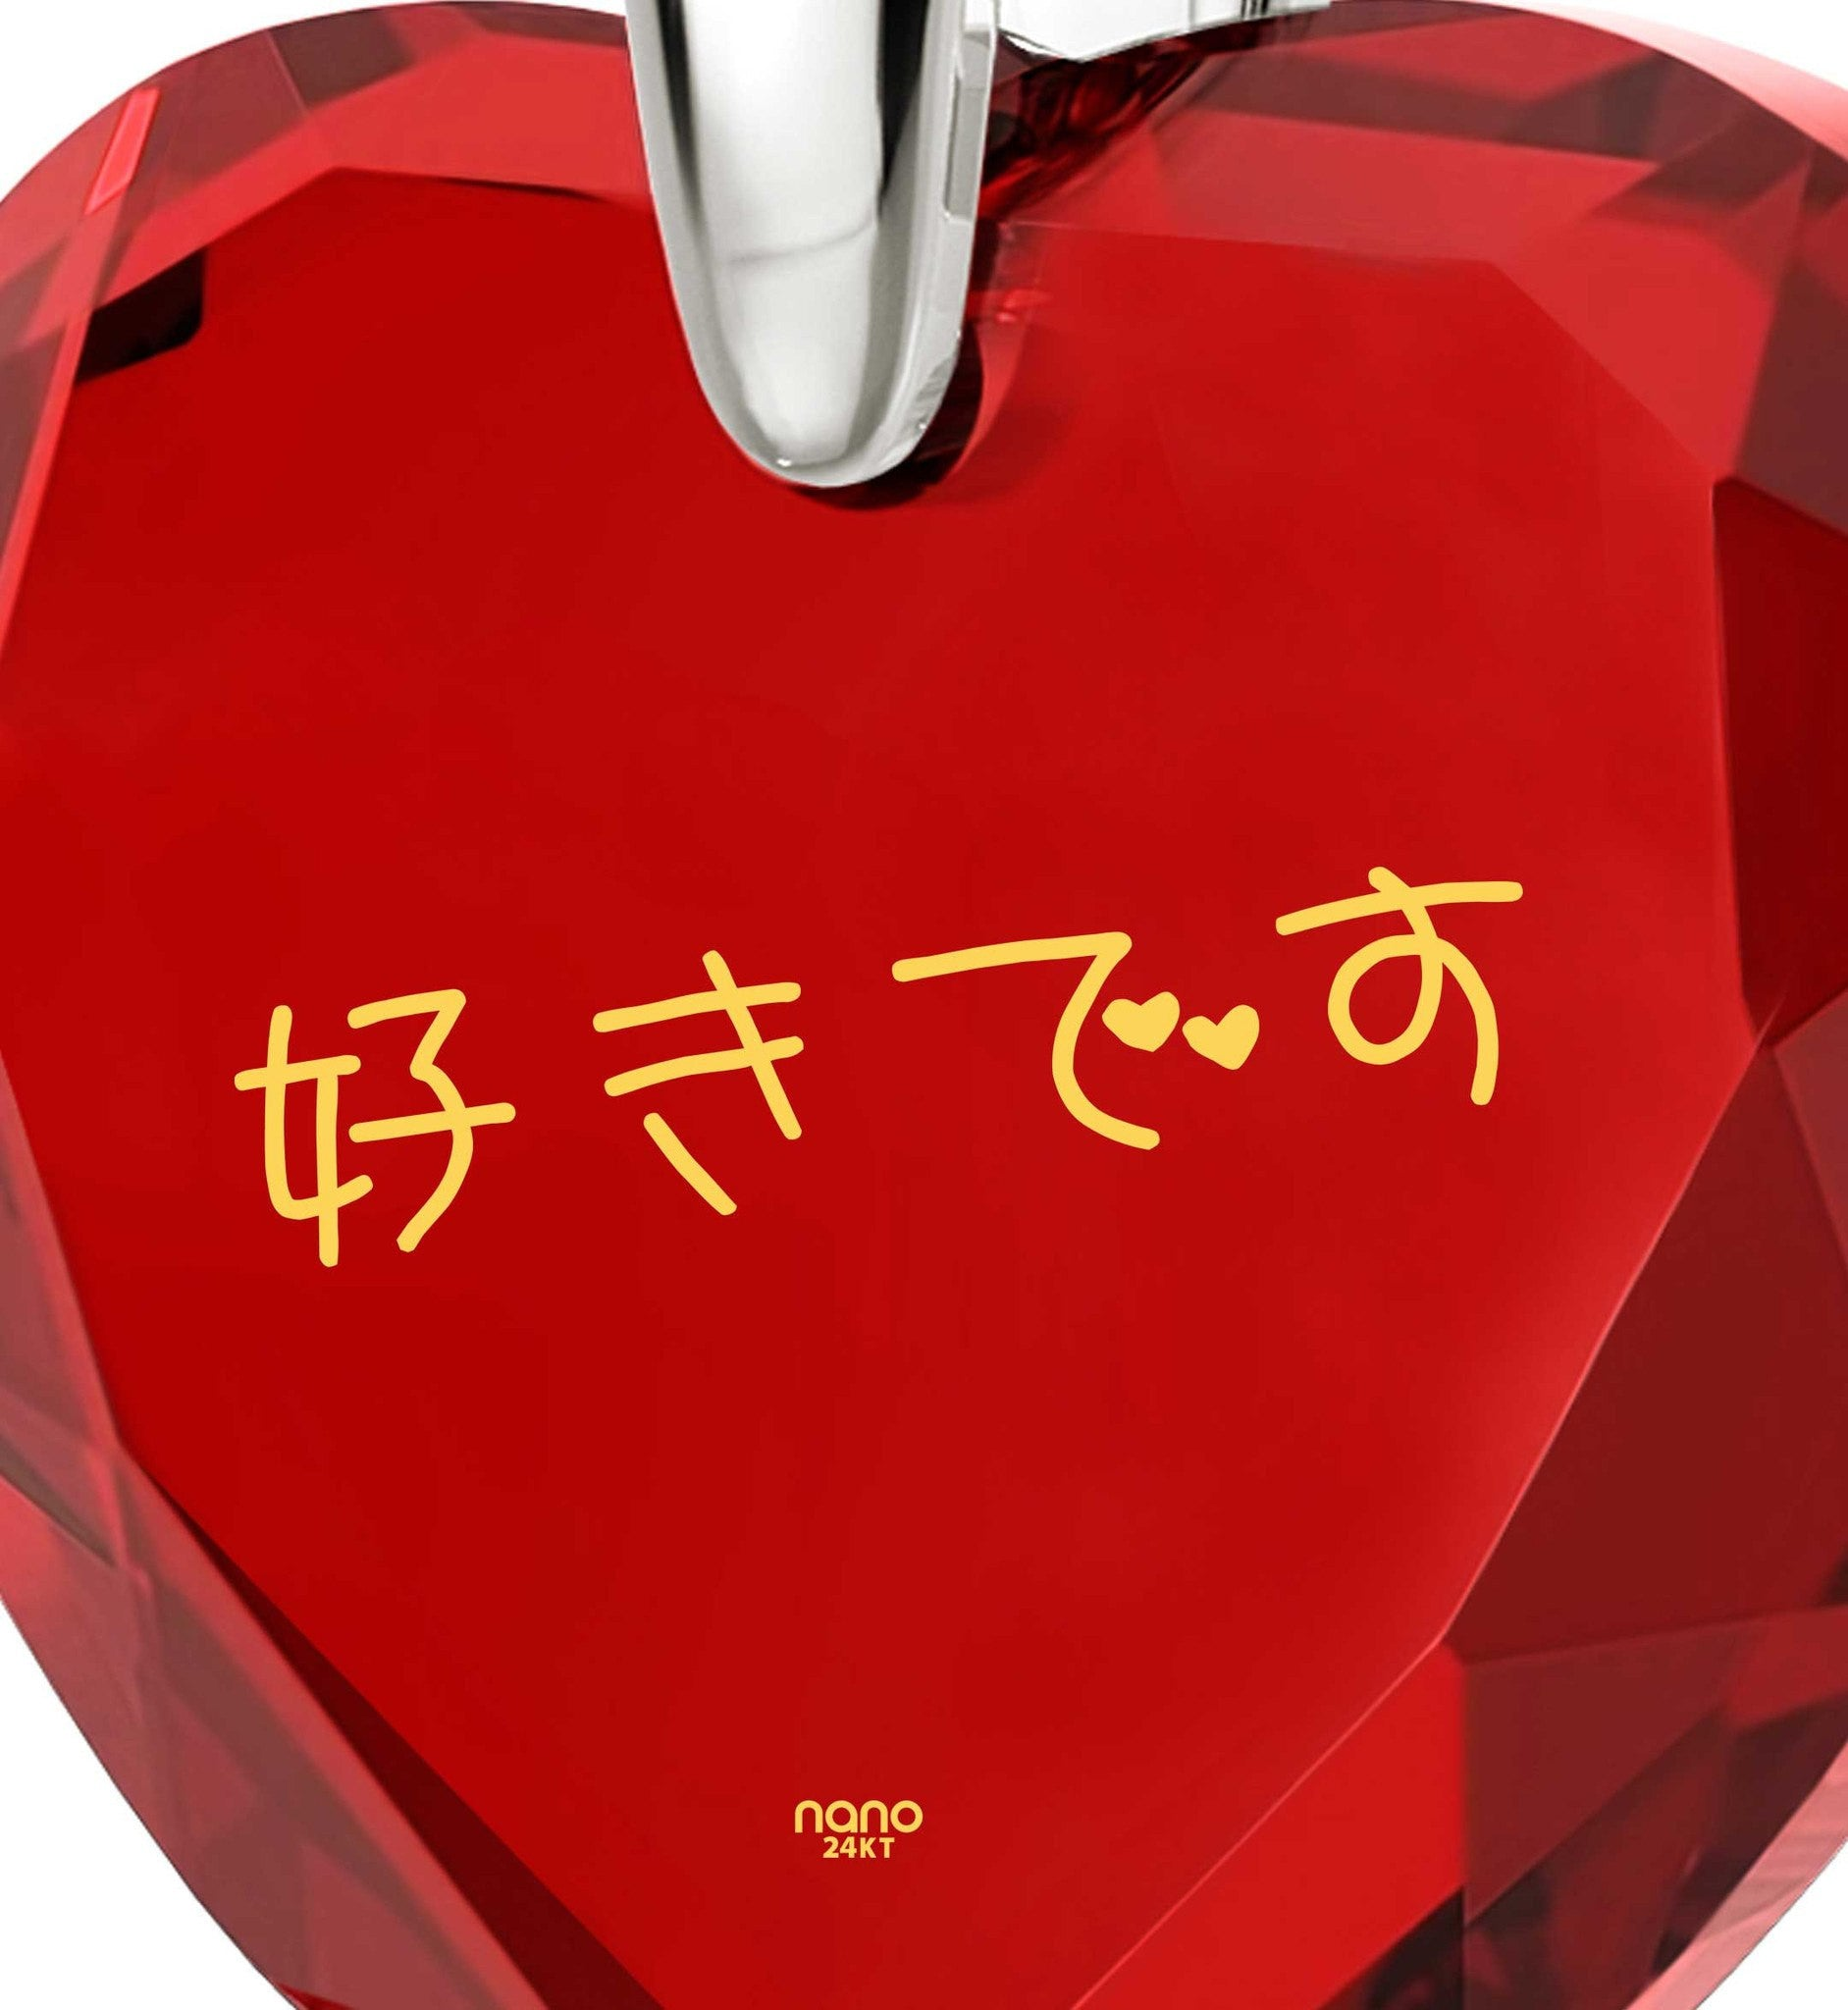 "Top Womens Gifts, Red Heart Necklace,""I Love You"" in Japanese, Birthday Ideas for Wife, Nano Jewelry"